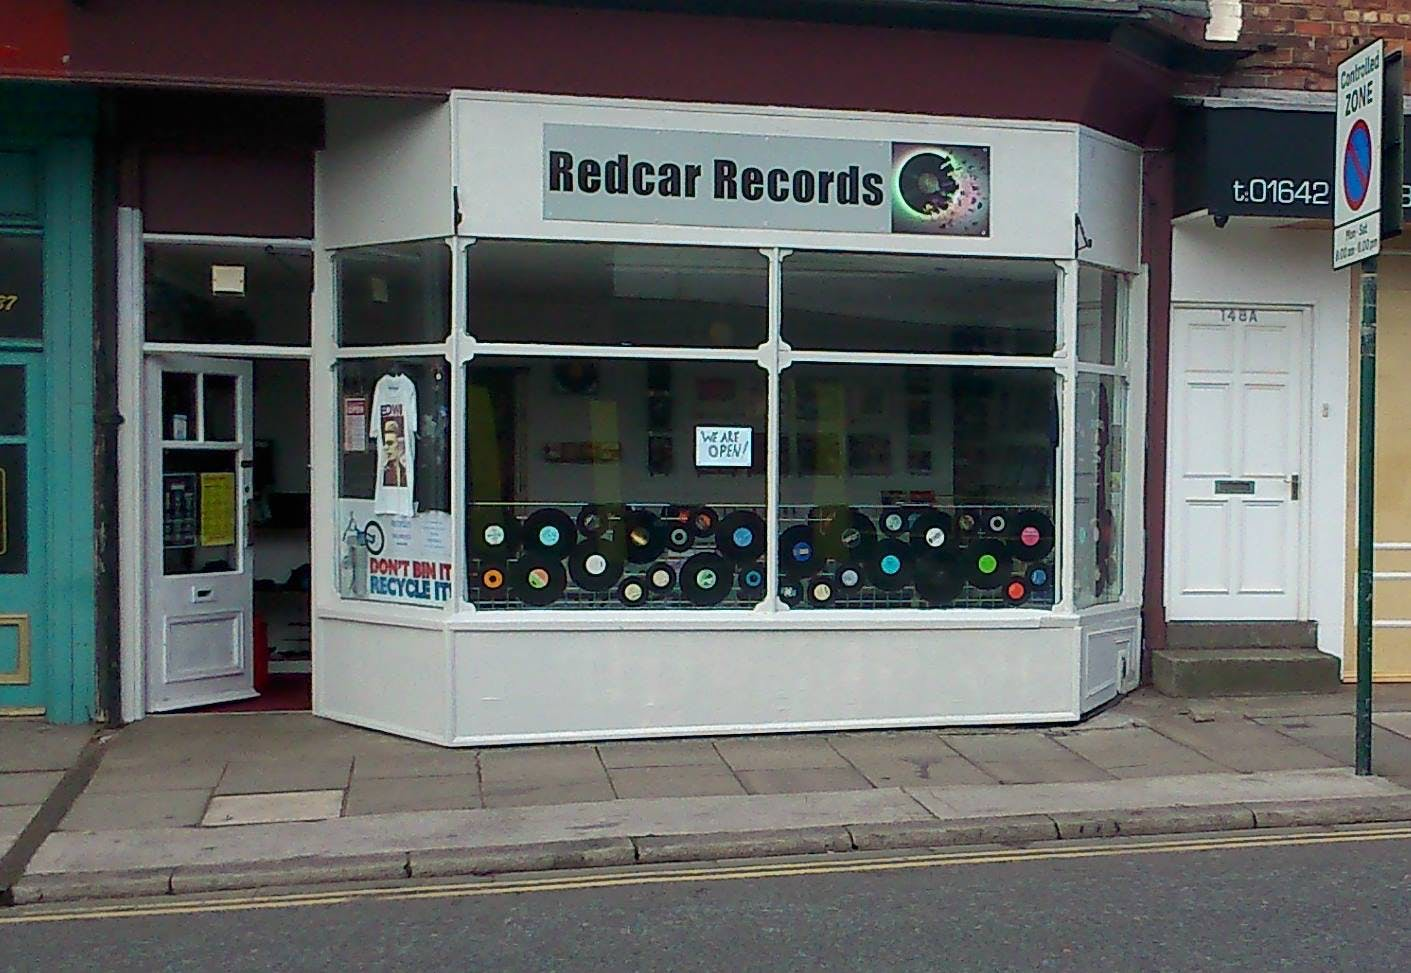 fc8f0cdeab RecordStores/UK.md at master · ghostrong/RecordStores · GitHub